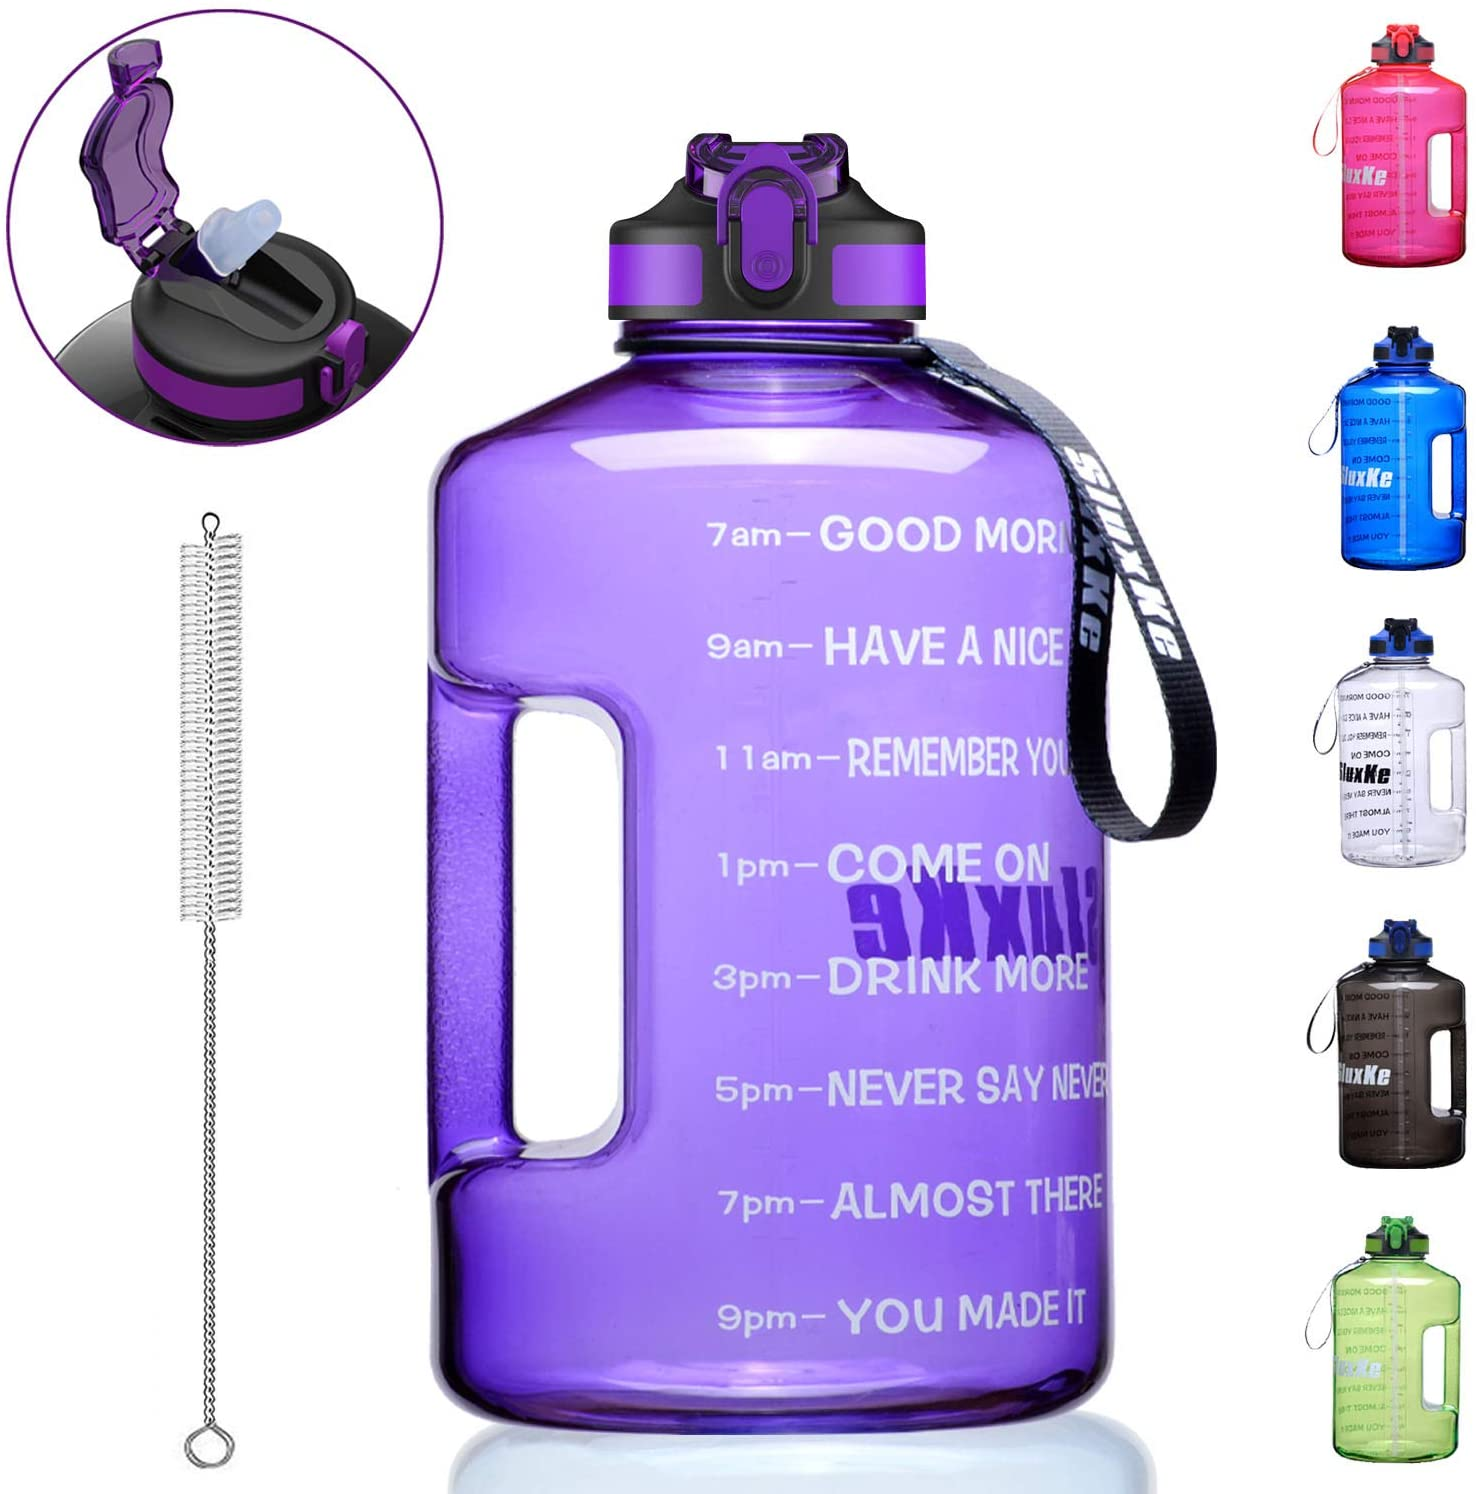 SLUXKE 1 Gallon Water Bottle with Time Marker and Straw, BPA Free 128oz Leak Proof Motivational Large Water Bottle Jug with Handle, Pop Up Open Sports Big Bottle Jug with Comfortable Silicone Nozzle